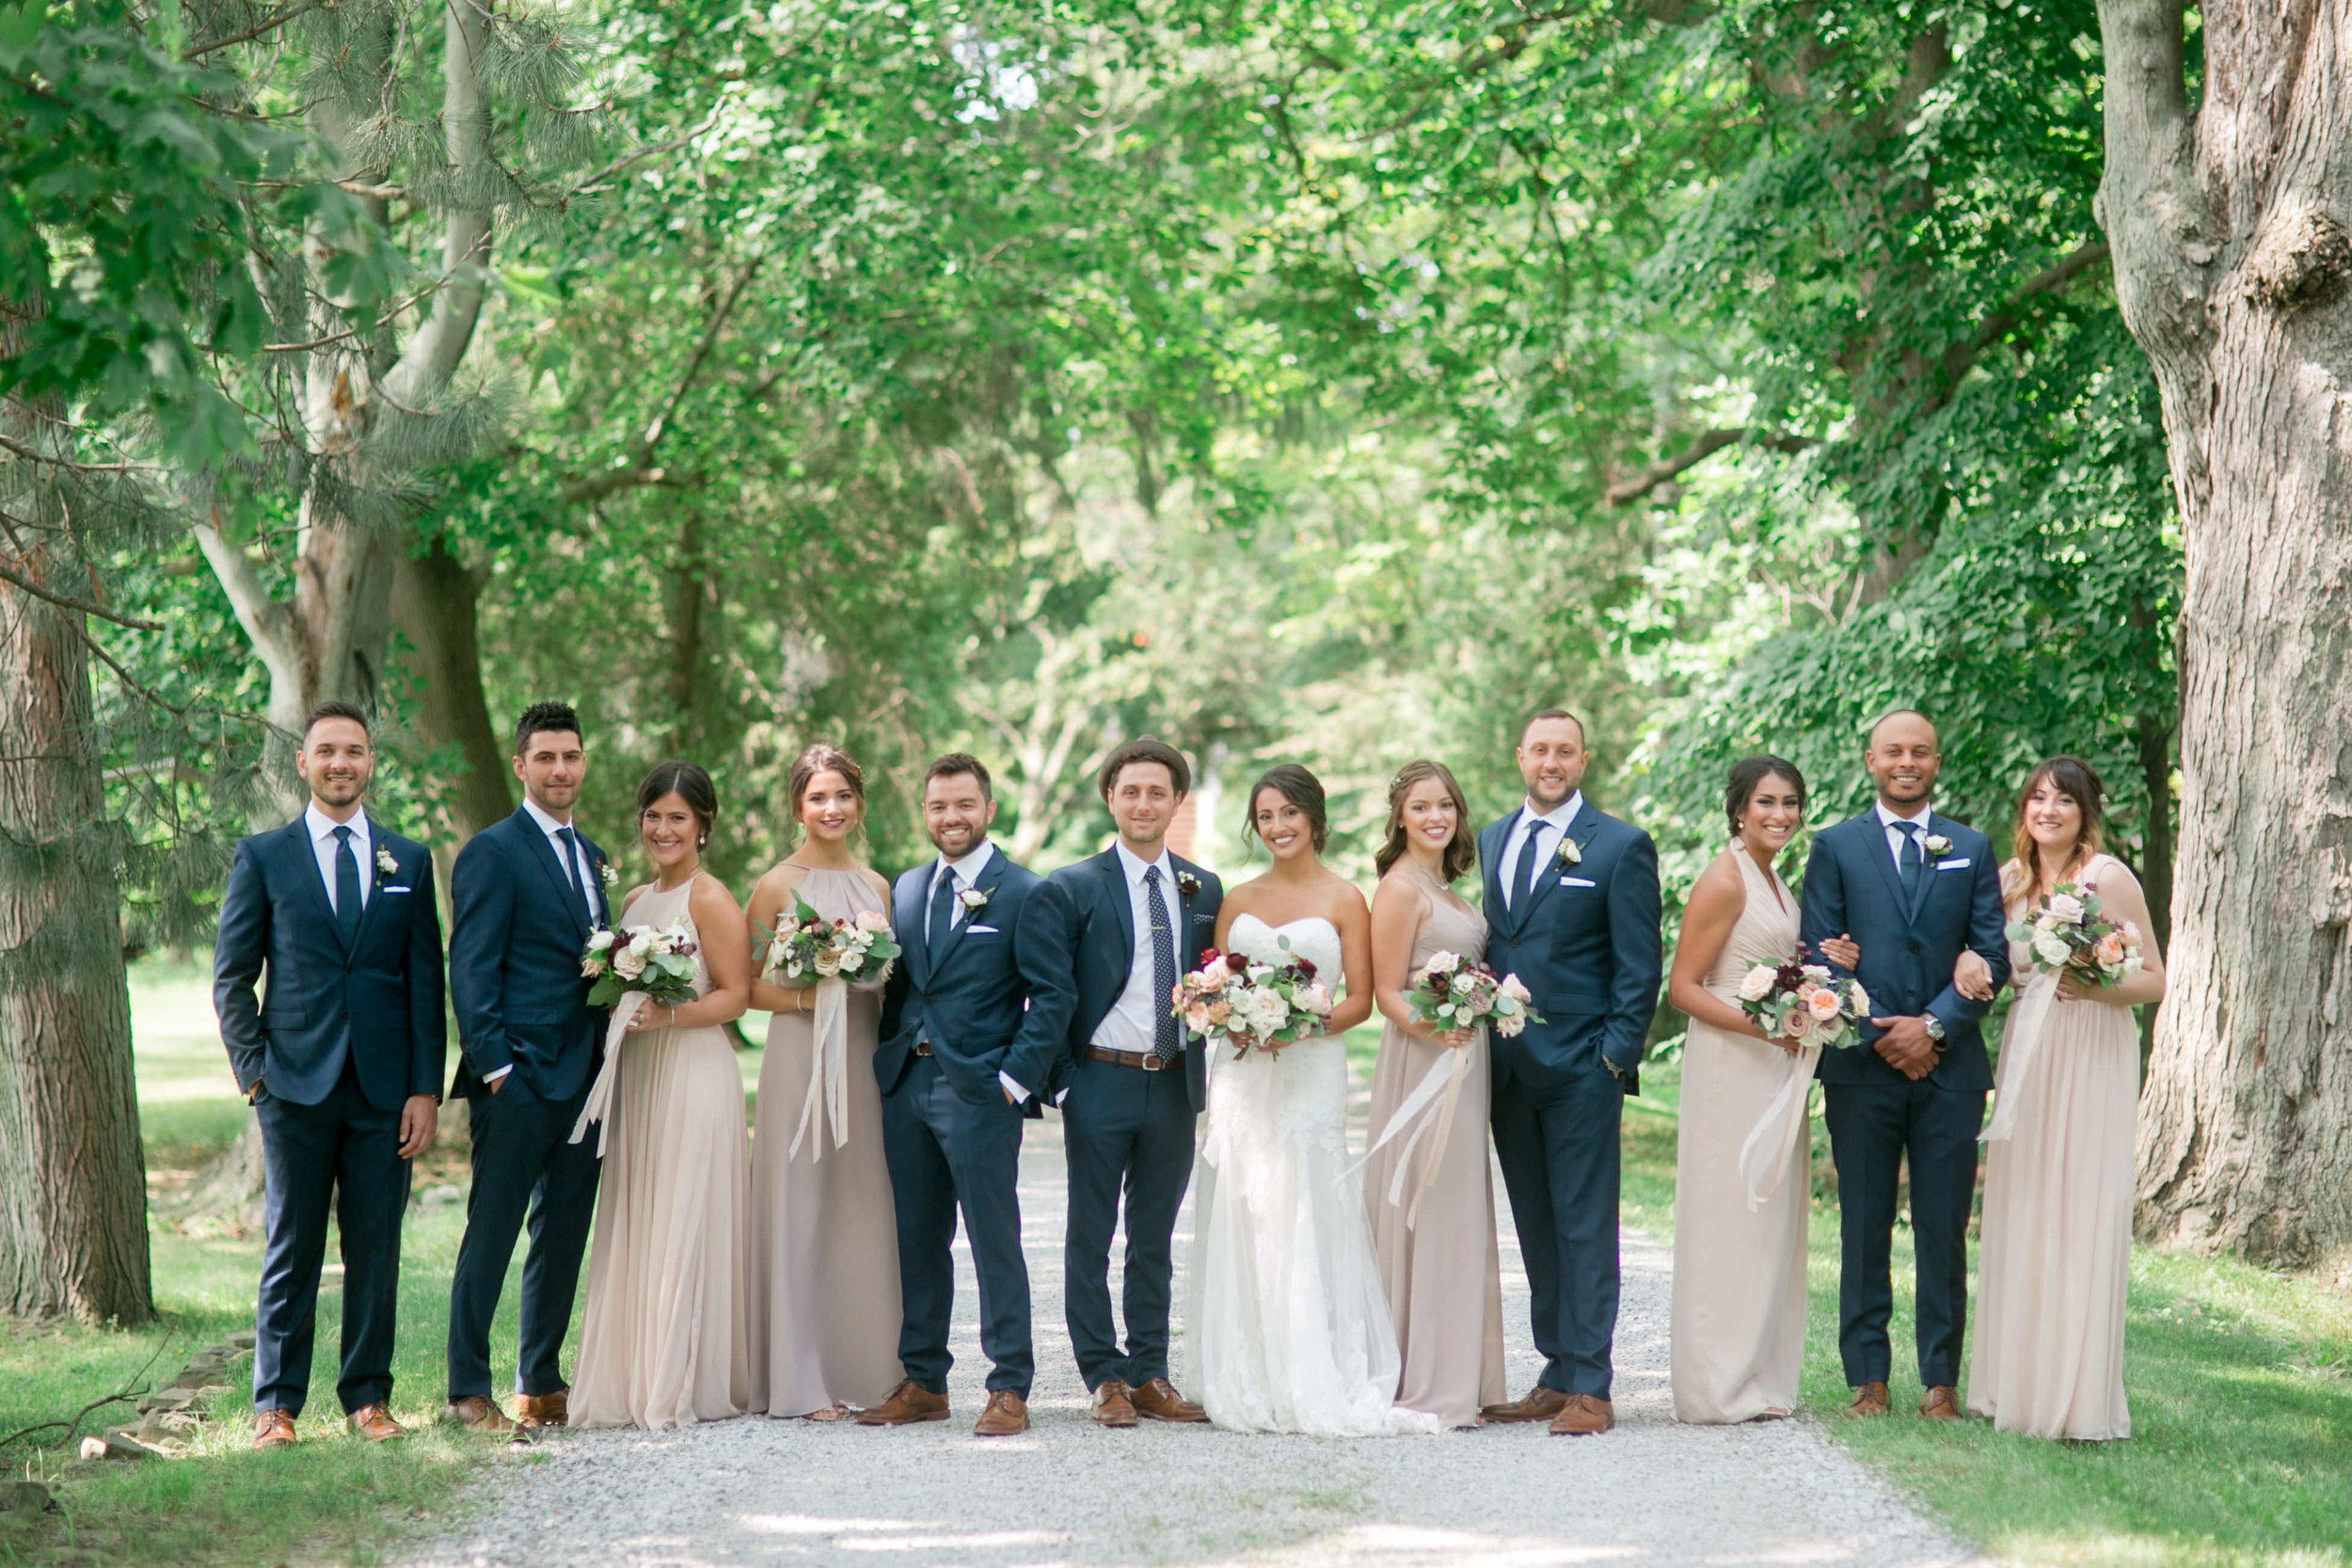 Sabrina___Jonathan_Wedding___High_Res._Finals_Daniel_Ricci_Weddings_164.jpg